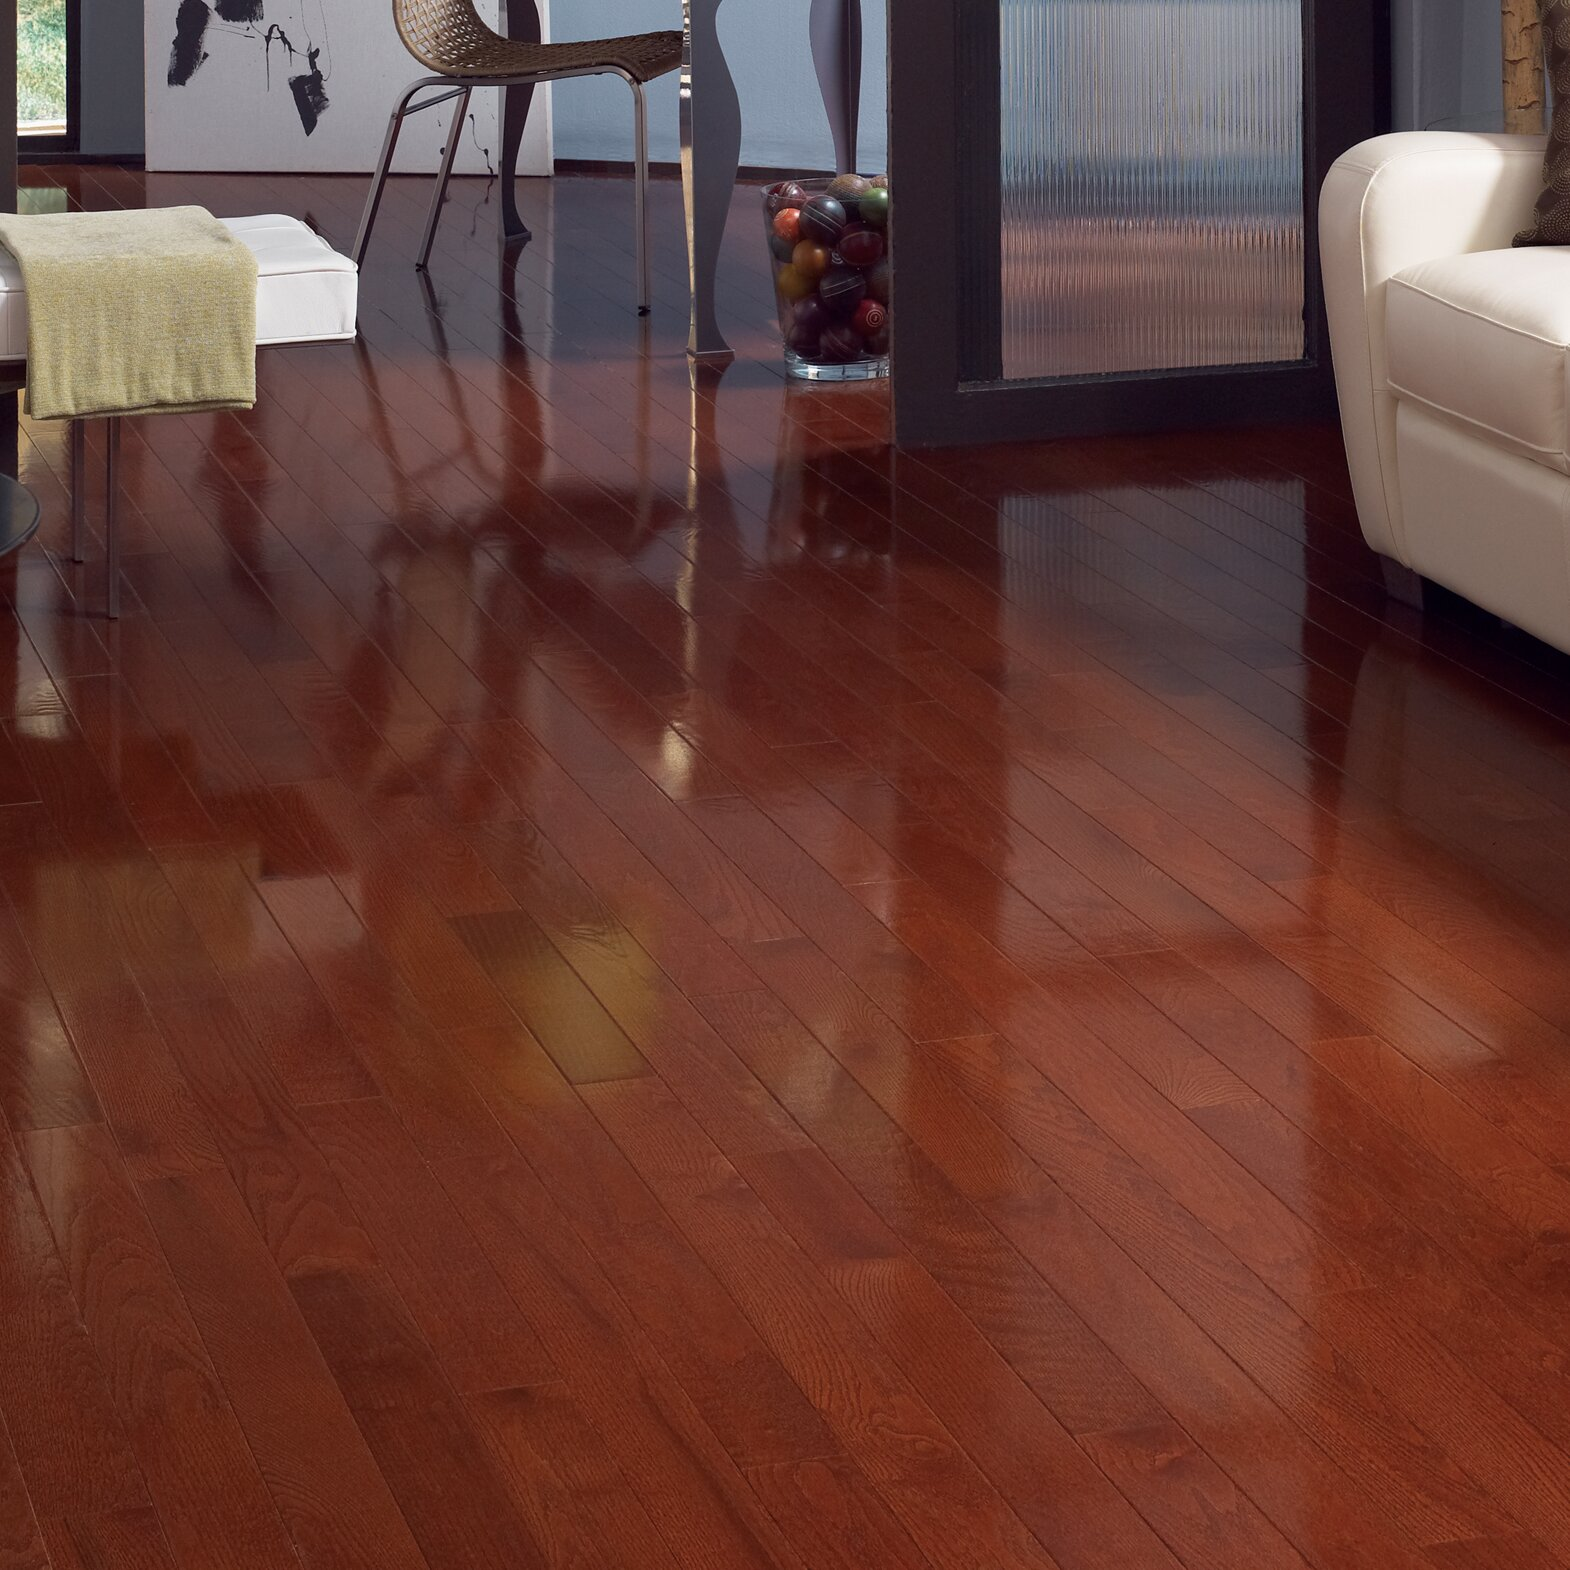 High Gloss 3 1 4 Quot Engineered Red Oak Hardwood Flooring In